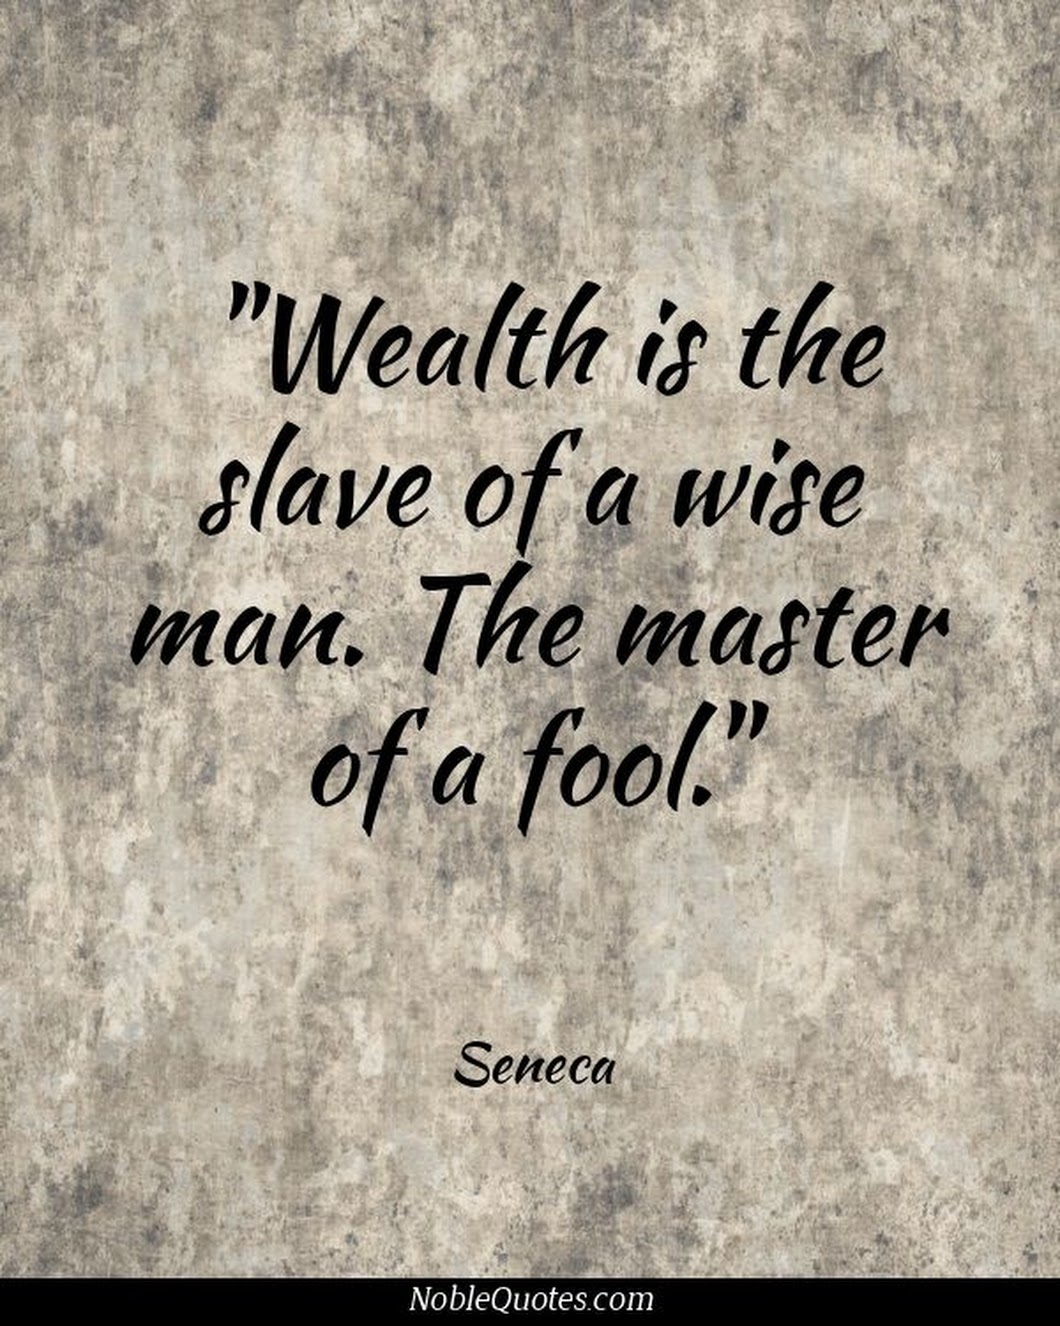 Wealth is the slave of a wise man. The master of a fool.